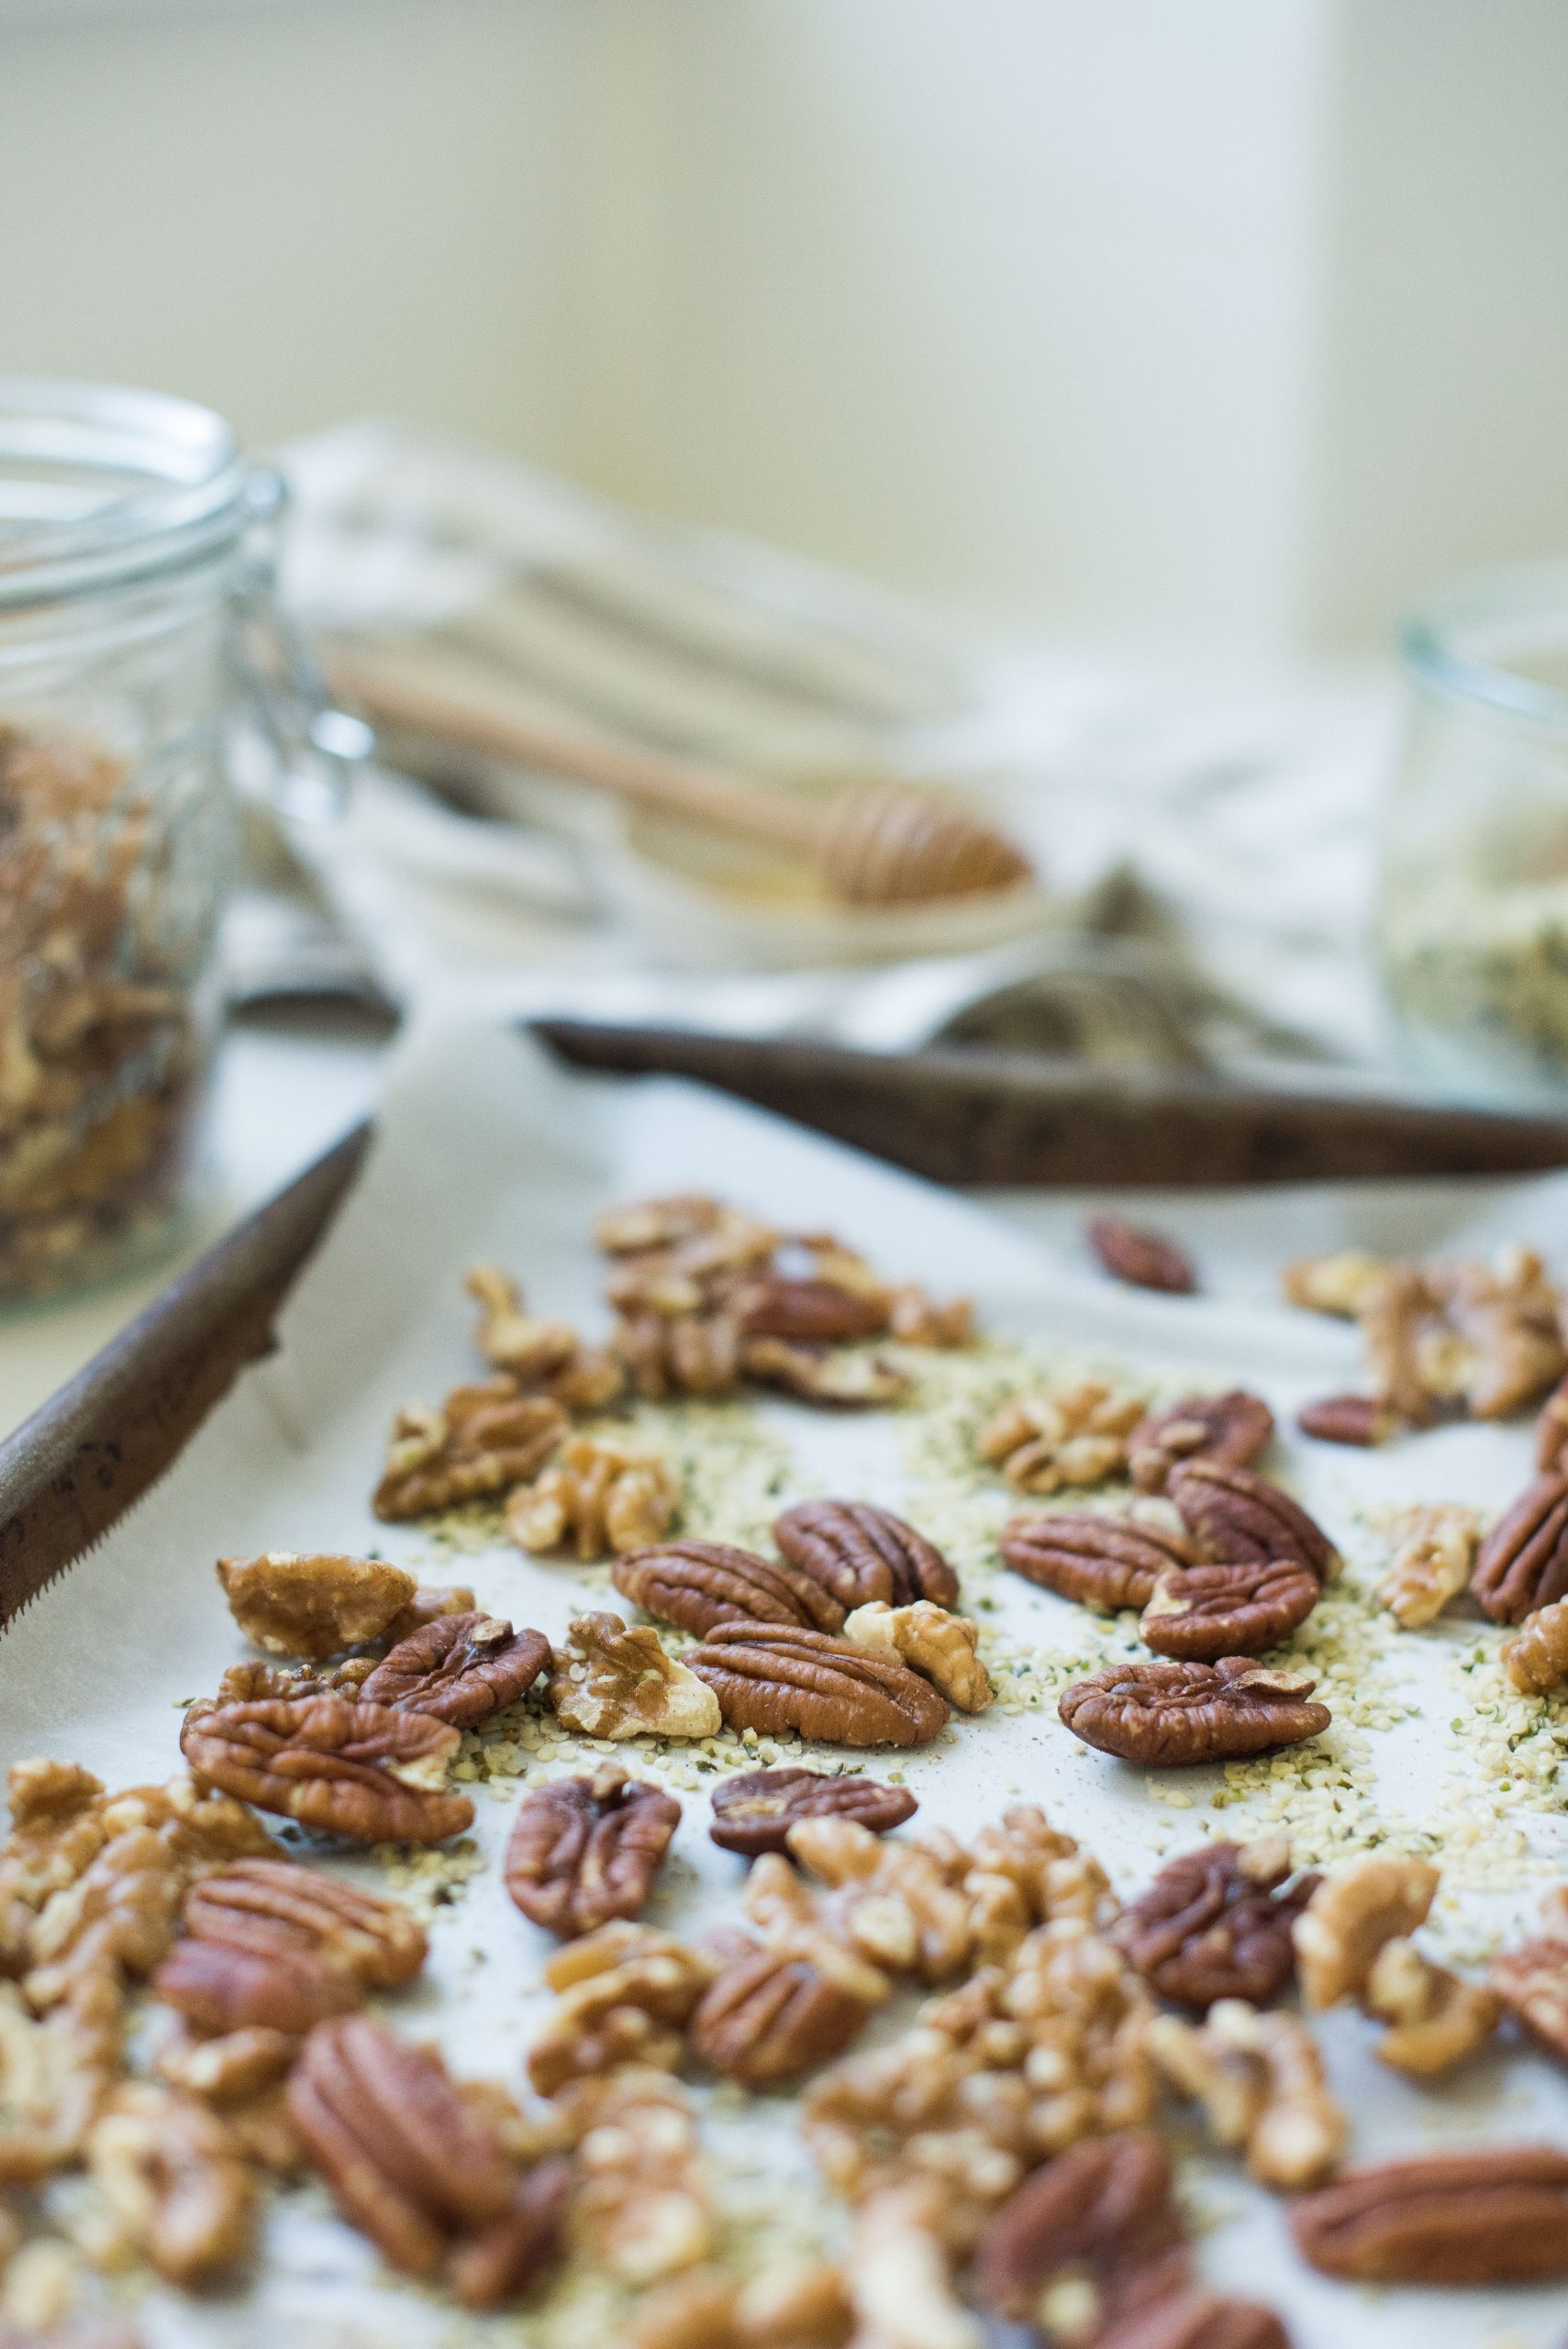 Roasted Nuts for Nut Butter